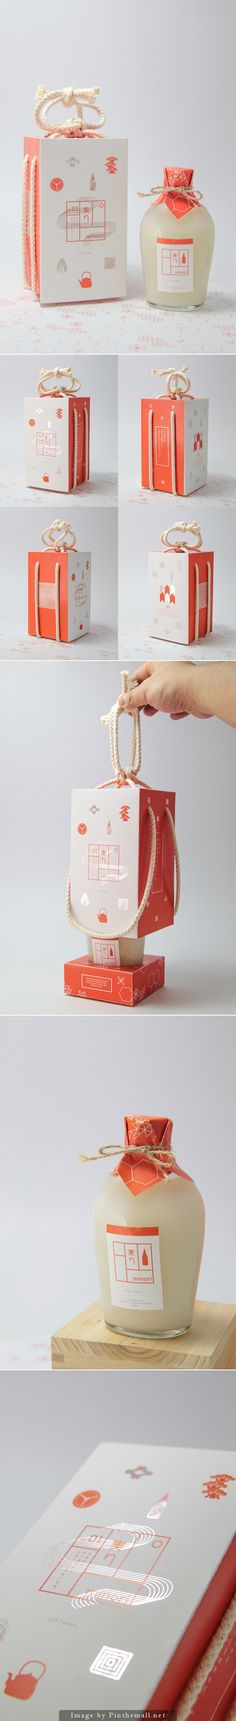 The very beautiful Minori Sake packaging curated by Packaging Diva PD. 'Minori' meaning harvest in Japanese. Branding And Packaging, Cool Packaging, Tea Packaging, Beverage Packaging, Bottle Packaging, Print Packaging, Branding Agency, Beauty Packaging, Design Packaging